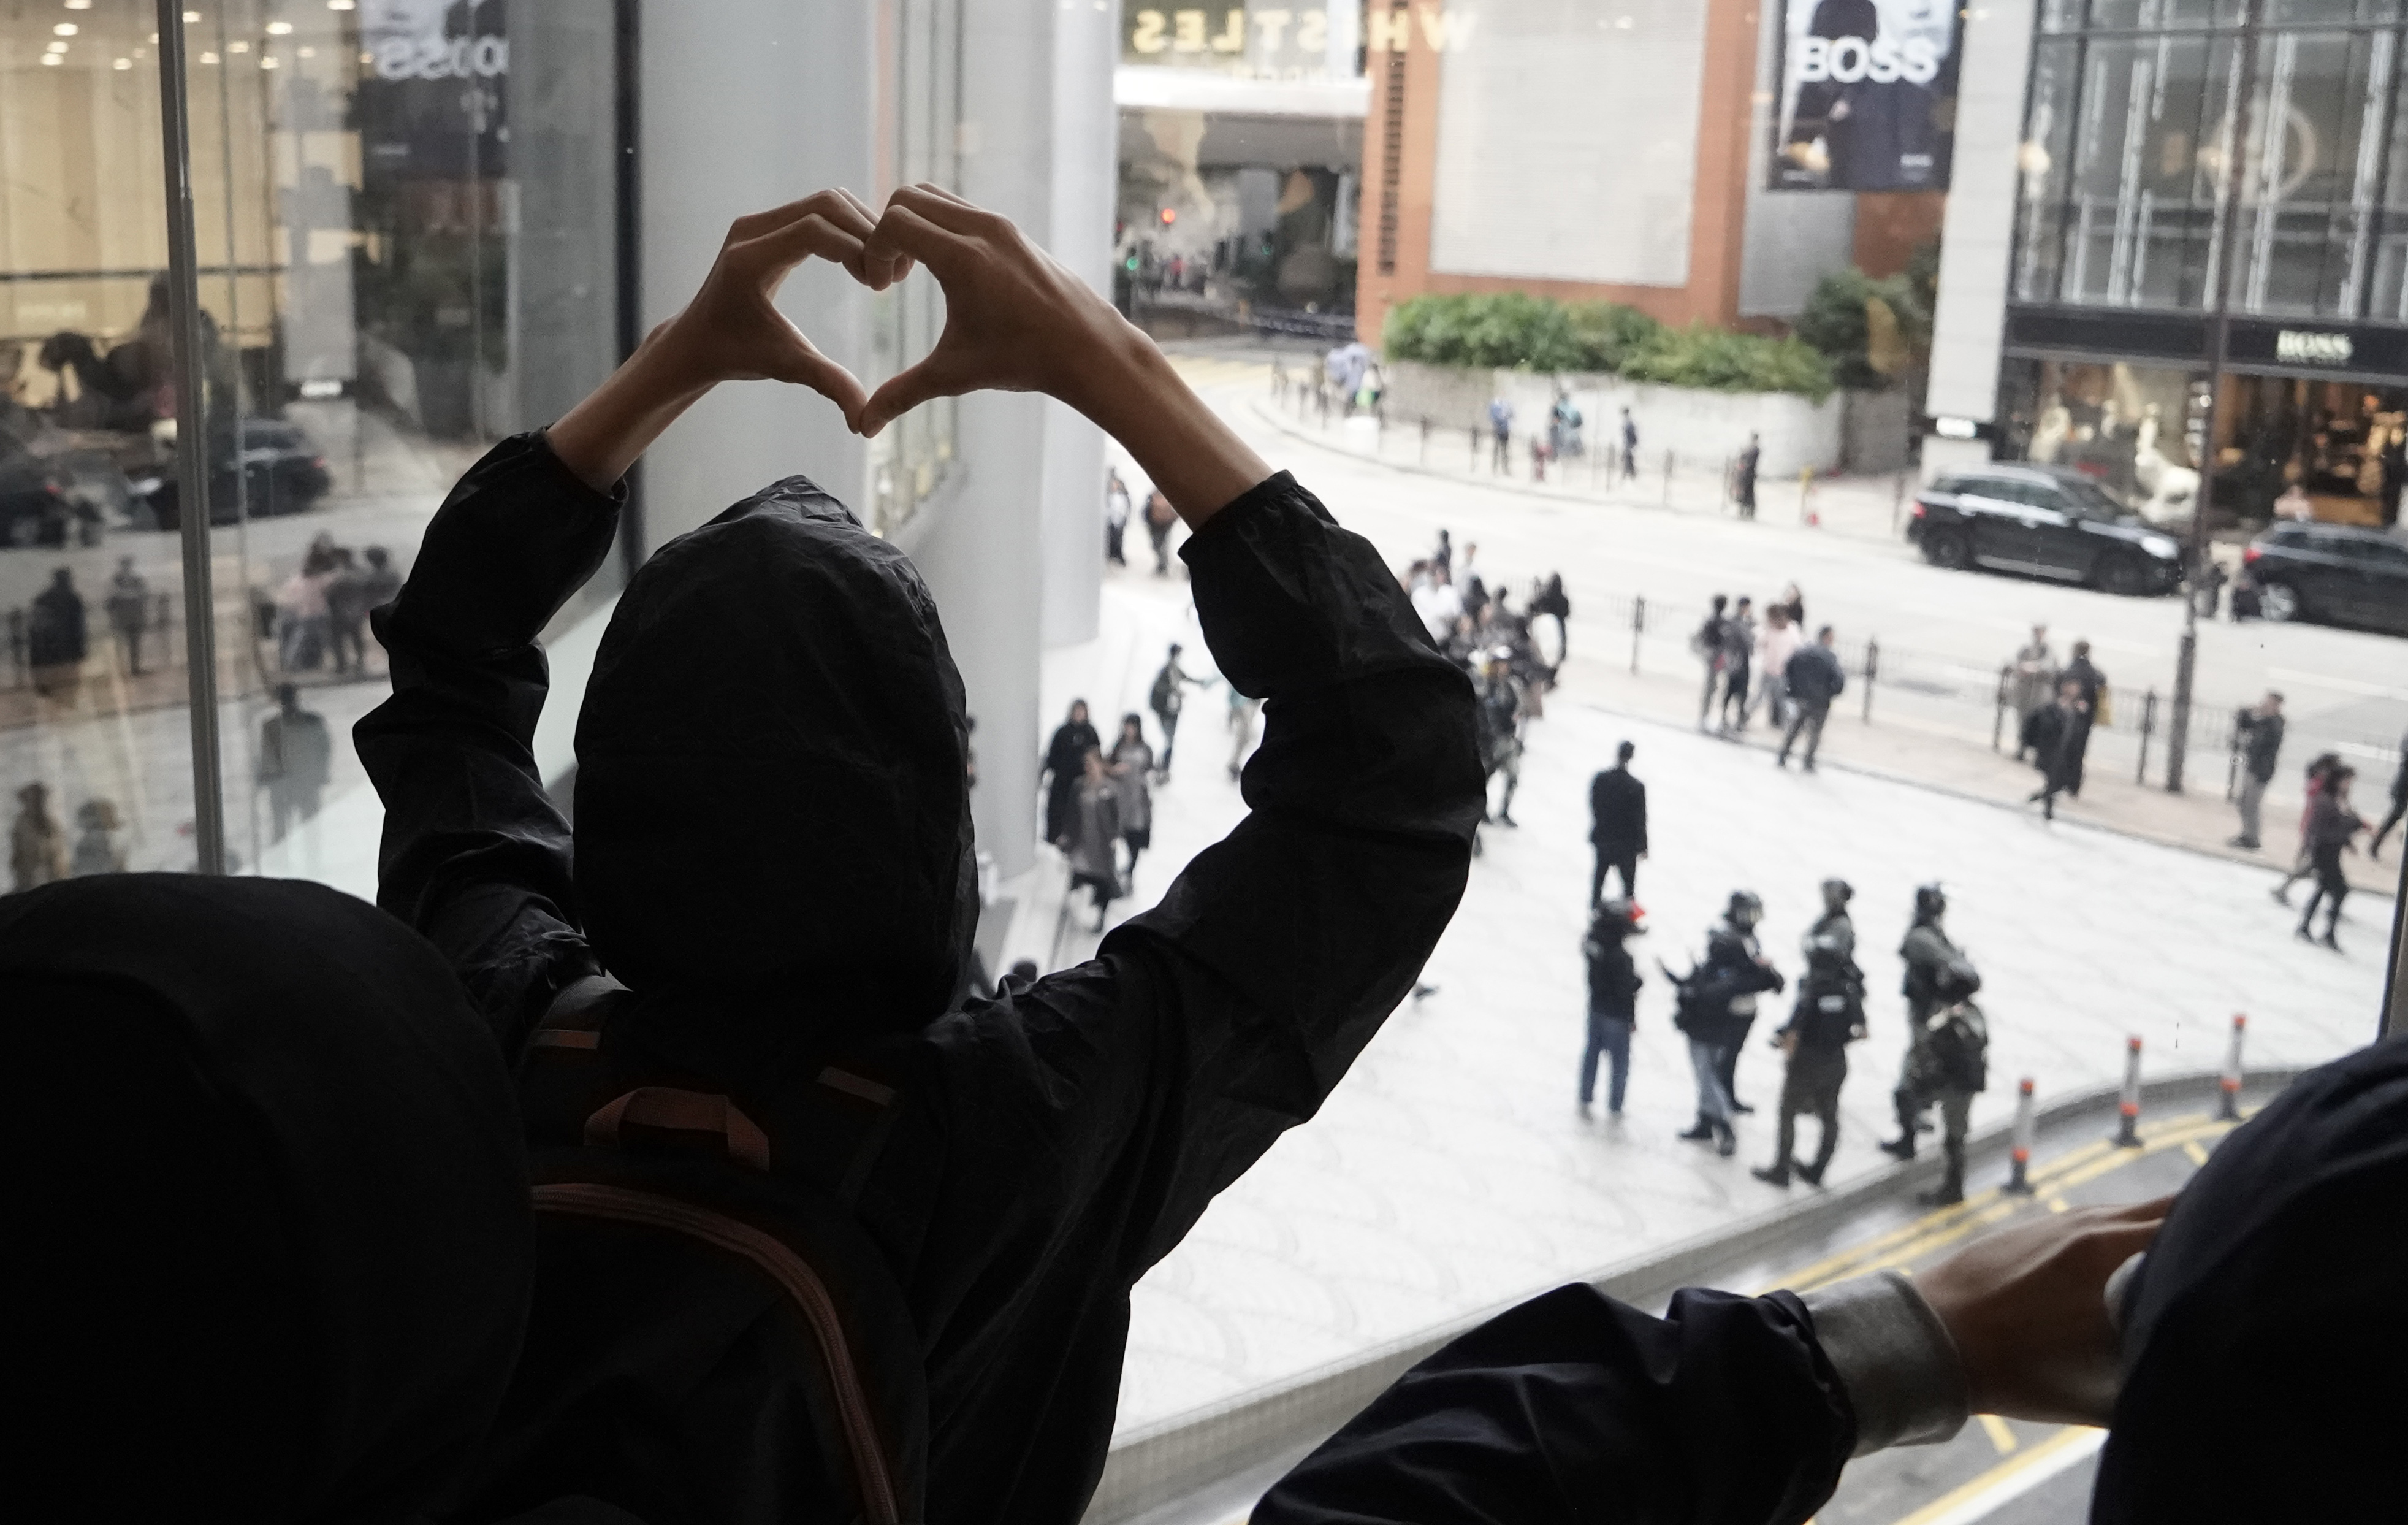 Hong Kong pro-democracy protesters show a heart sign to riot police in downstair as protesters march in Harbour City shopping mall in Hong Kong, on December 21, 2019